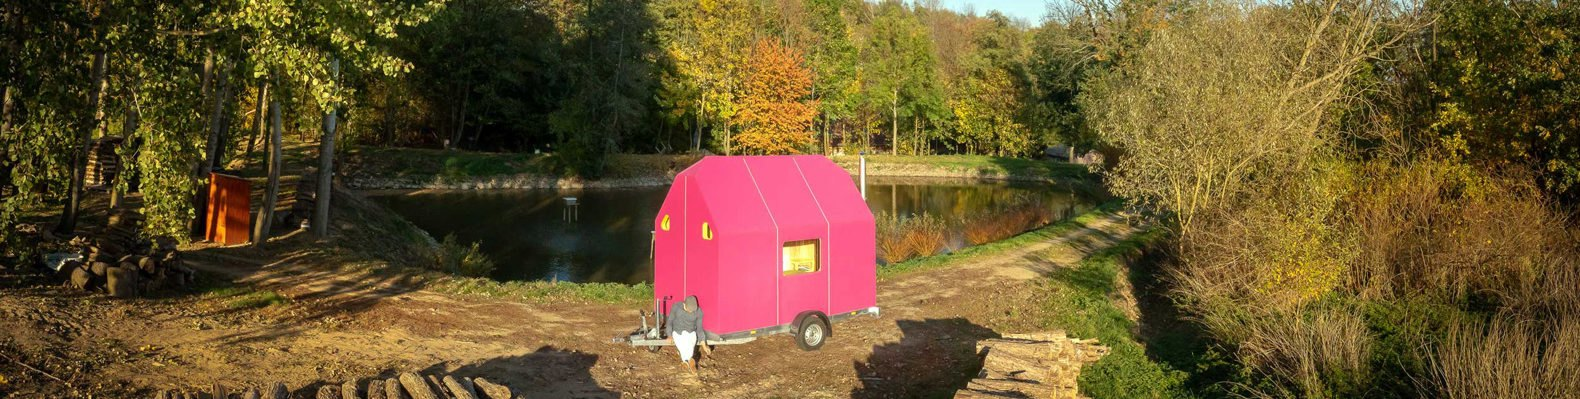 bright pink tiny home surrounded by trees in autumn